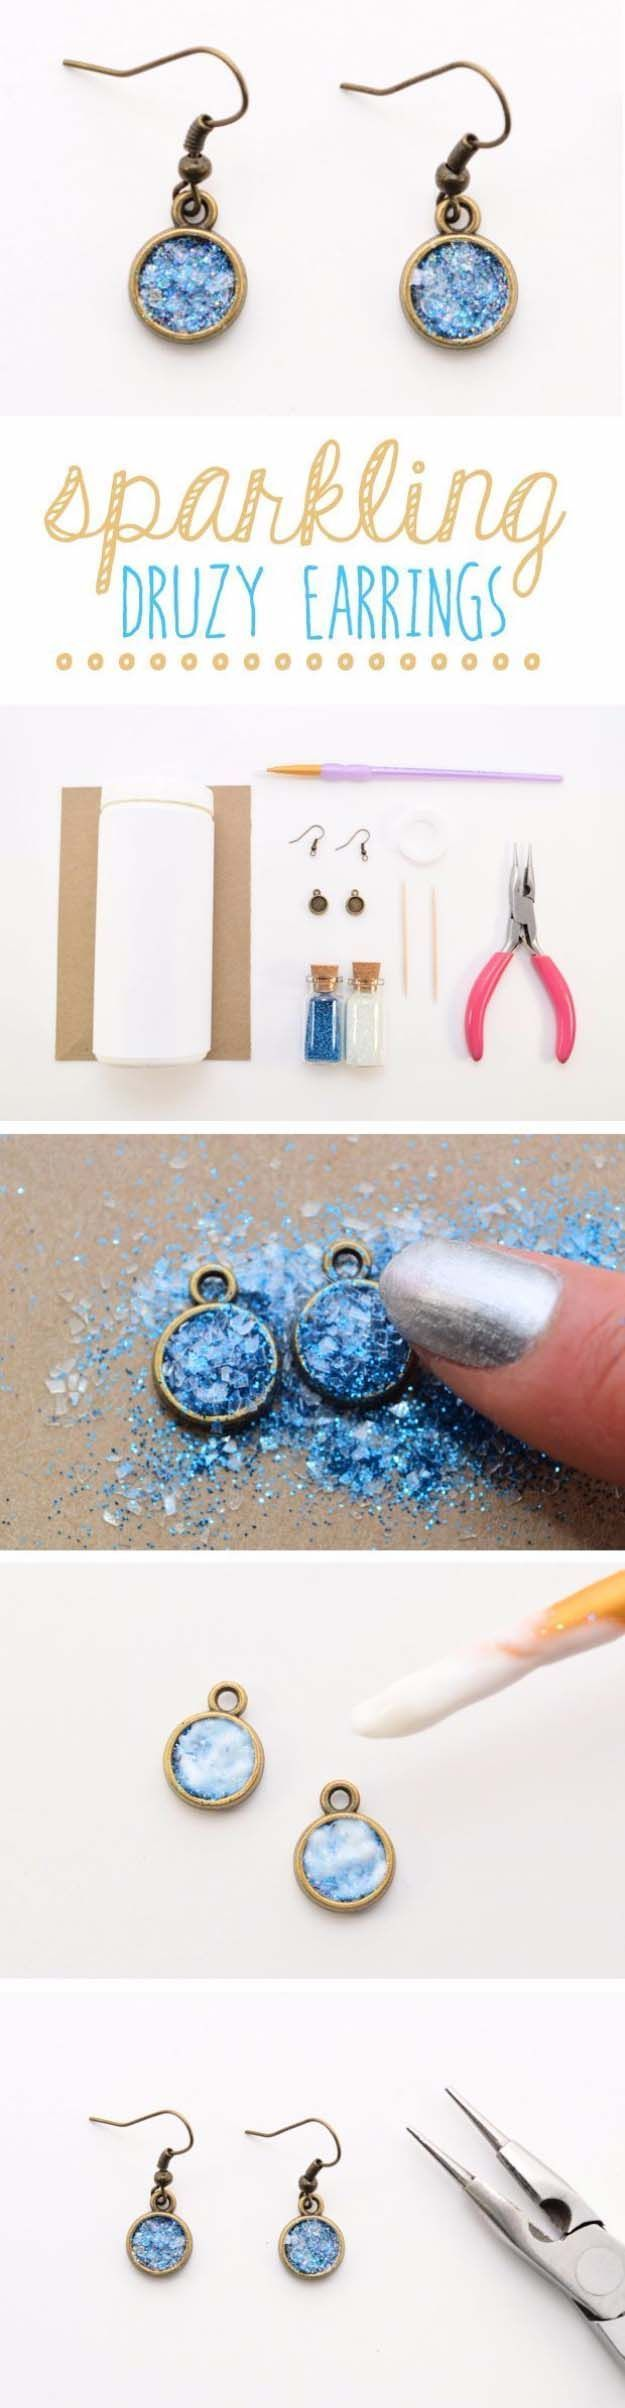 DIY Gifts for Your Girlfriend and Cool Homemade Gift Ideas for Her | Easy  Creative DIY